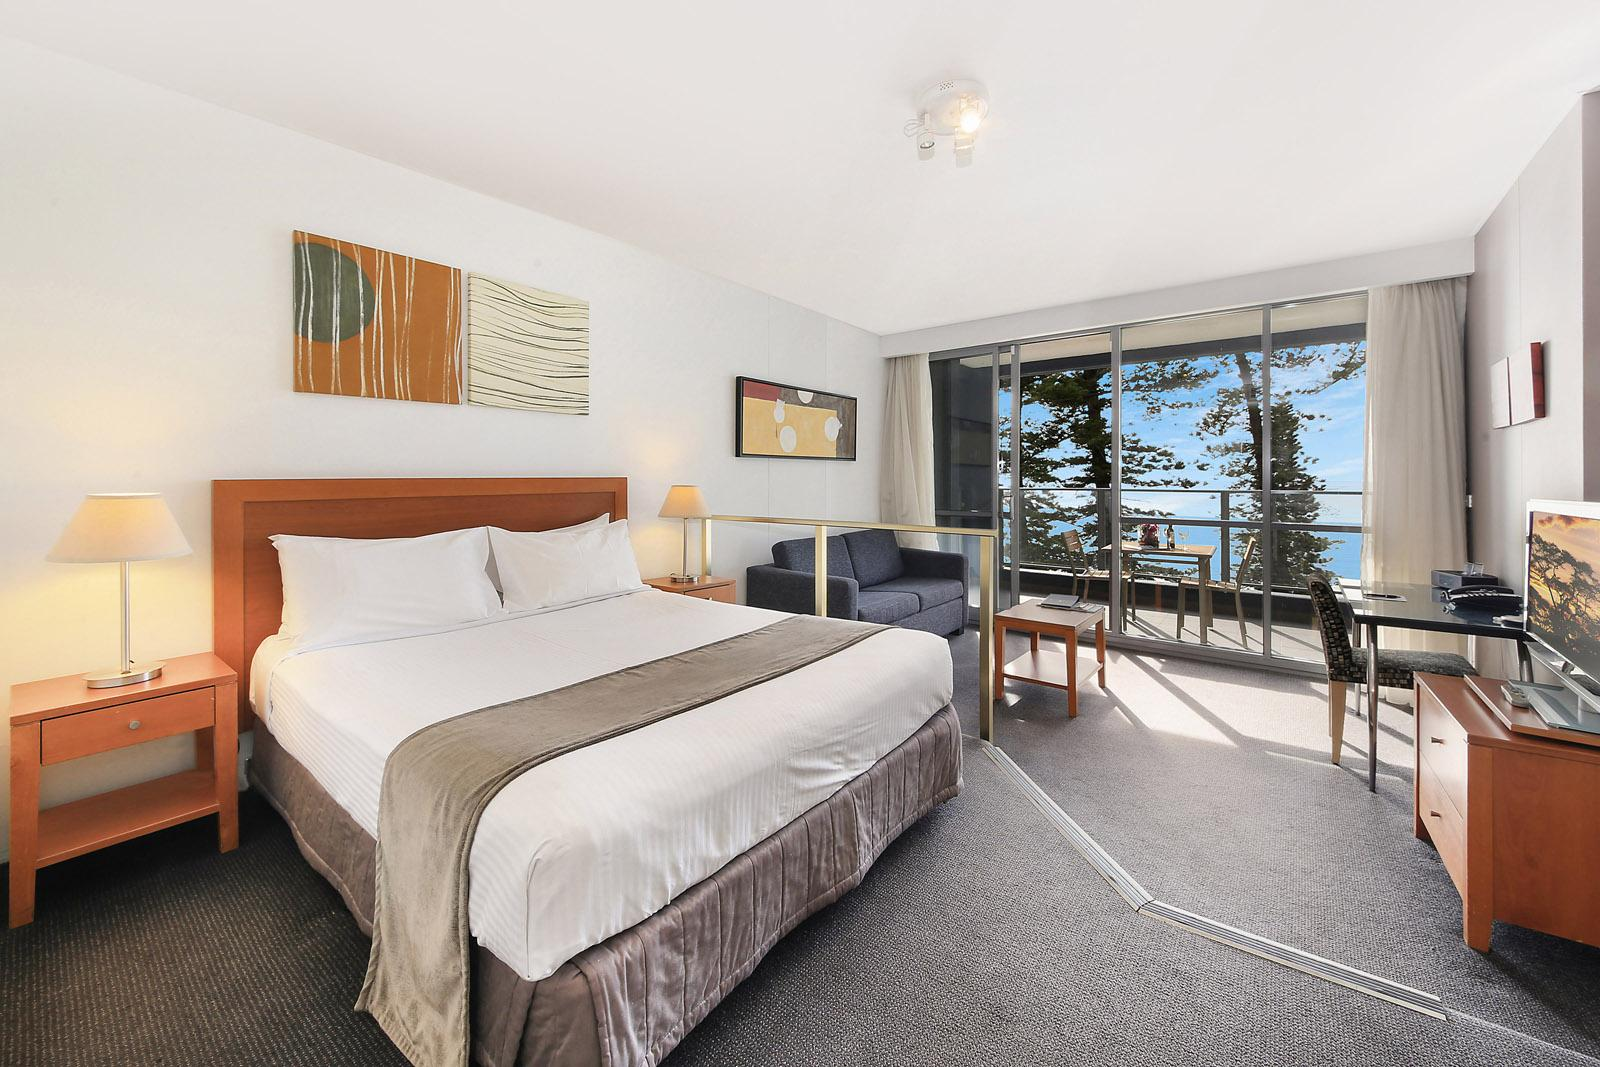 1 bedroom Serviced Apartment for sale in Manly Beach